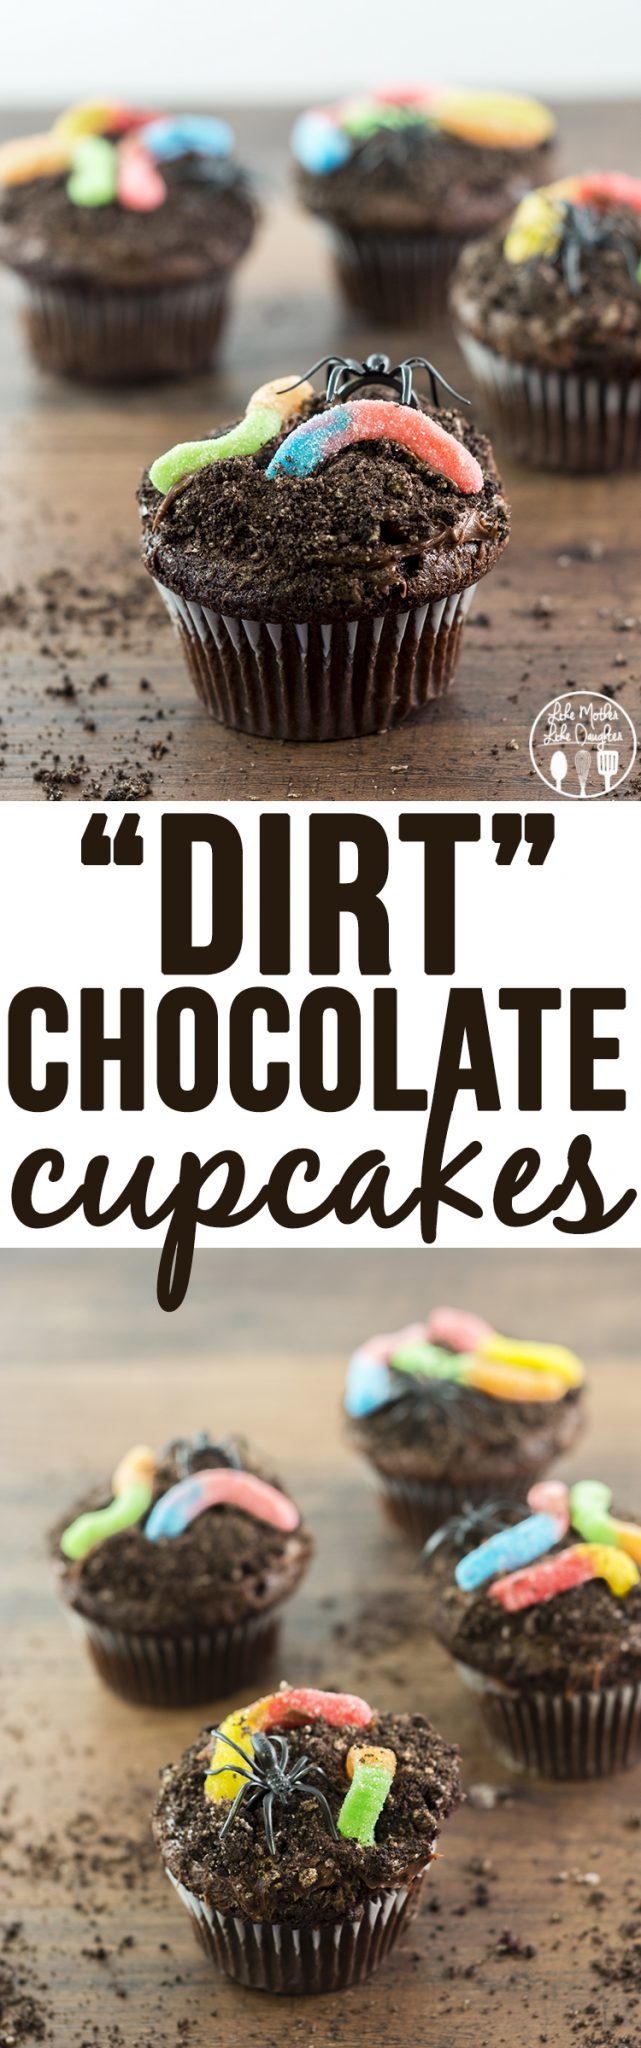 Dirt Cupcakes - These delicious chocolate cupcakes are topped with chocolate frosting and cookie crumbs and worms and spiders for a creepy crawly halloween treat